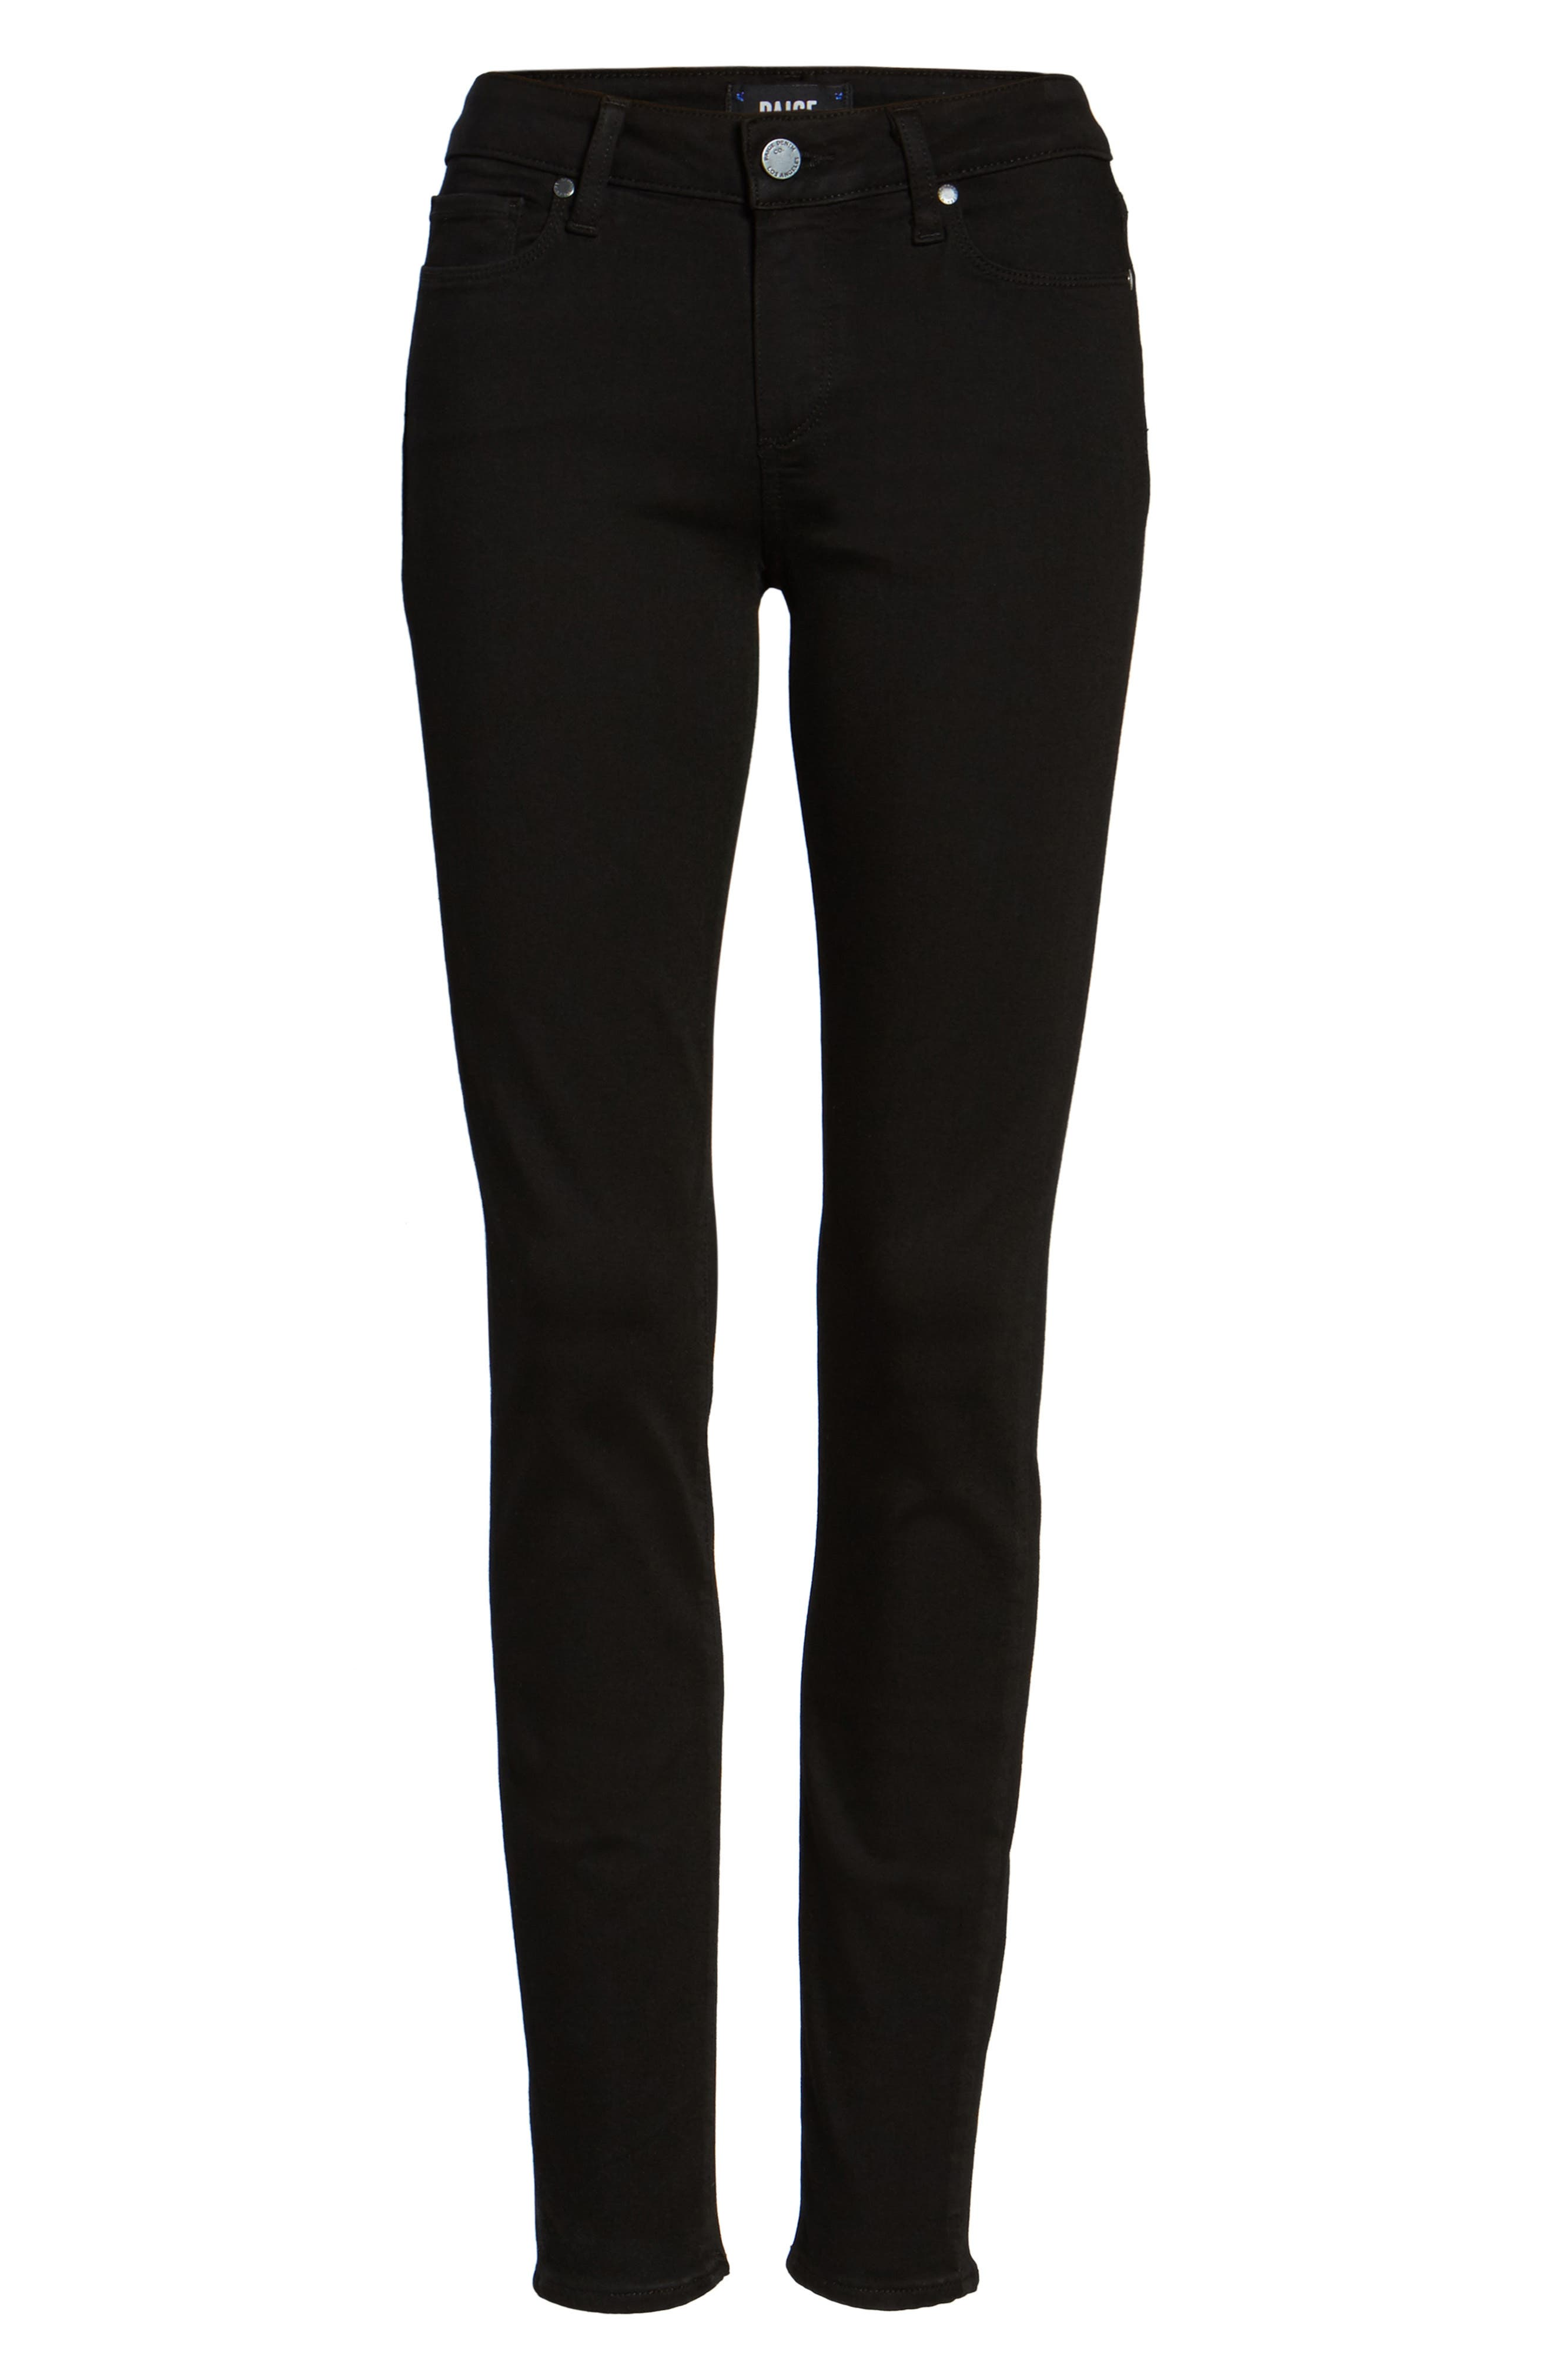 Transcend - Verdugo Ultra Skinny Jeans,                             Alternate thumbnail 4, color,                             BLACK SHADOW